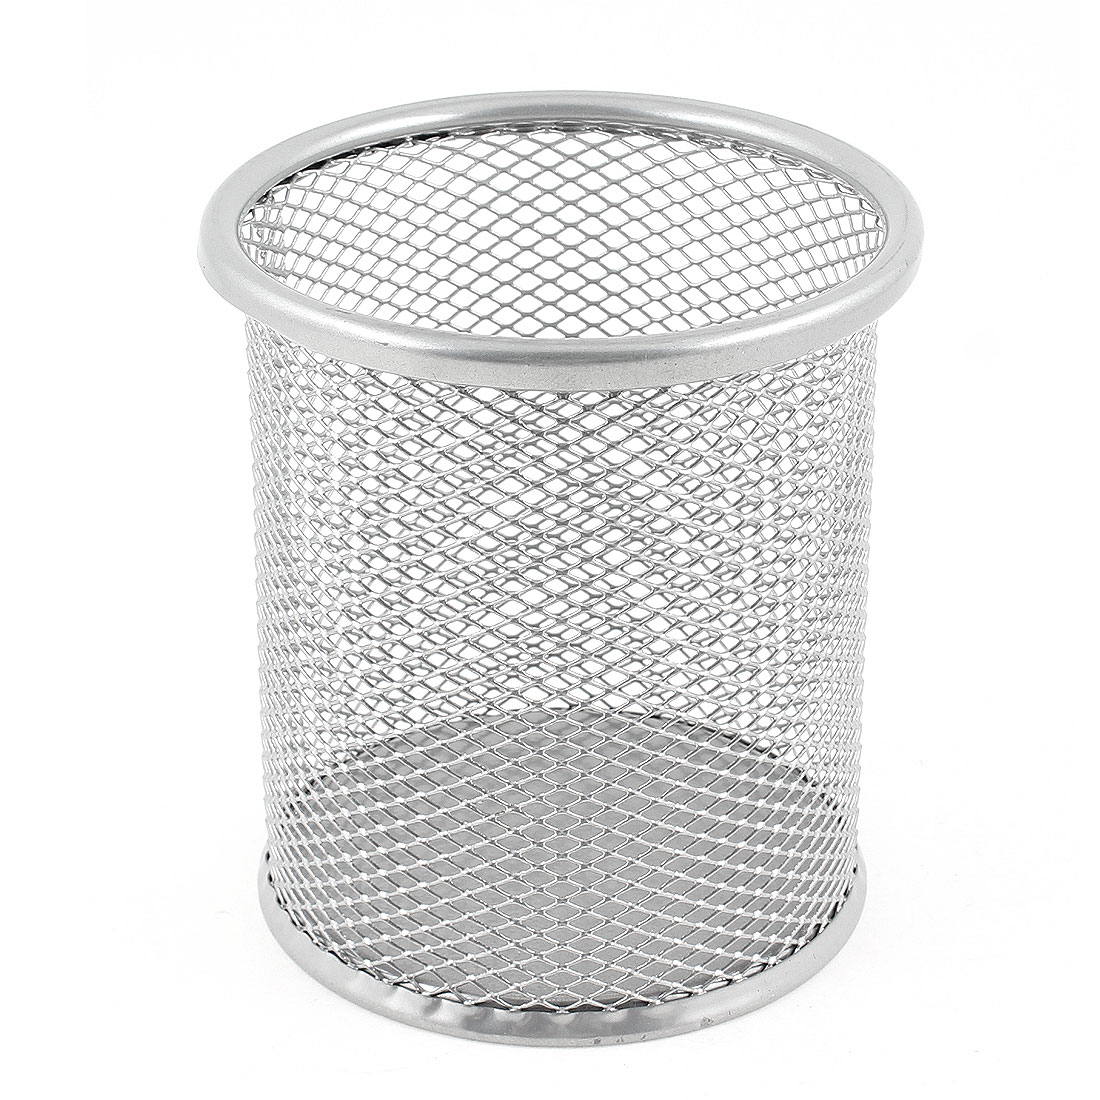 Silver Gray Metal Mesh Cylinder Shaped Pen Pencil Holder Container